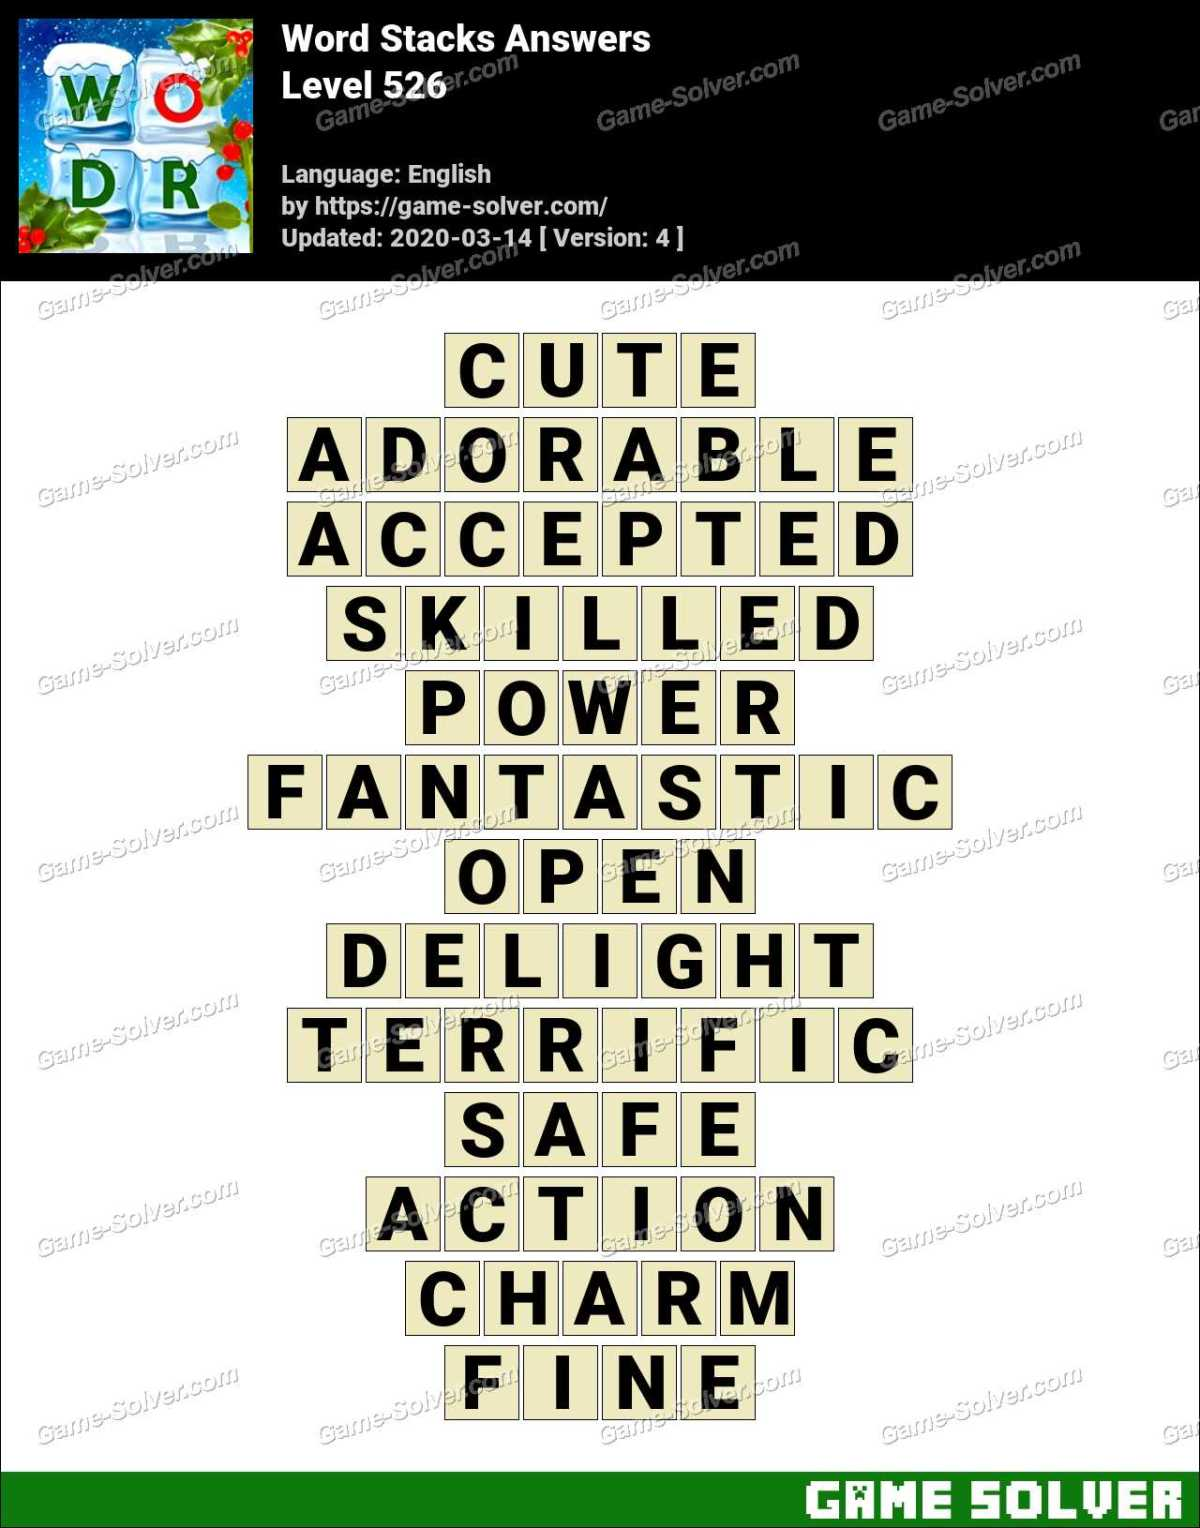 Word Stacks Level 526 Answers